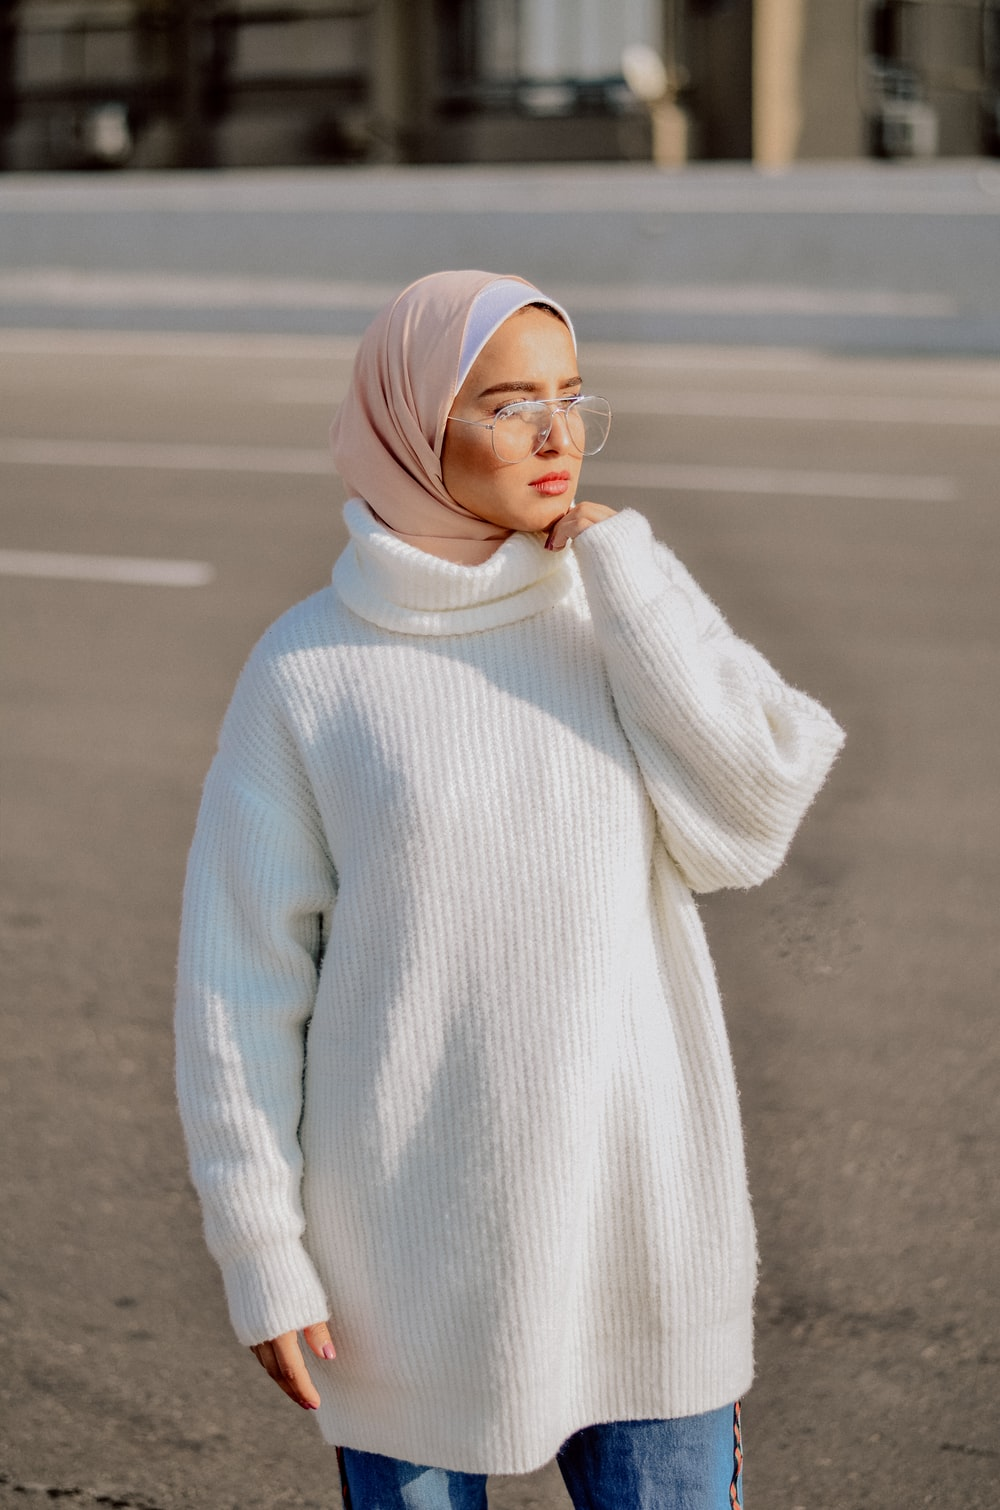 woman wearing white sweater, beige hijab headscarf, and eyeglasses standing on pathway during daytime